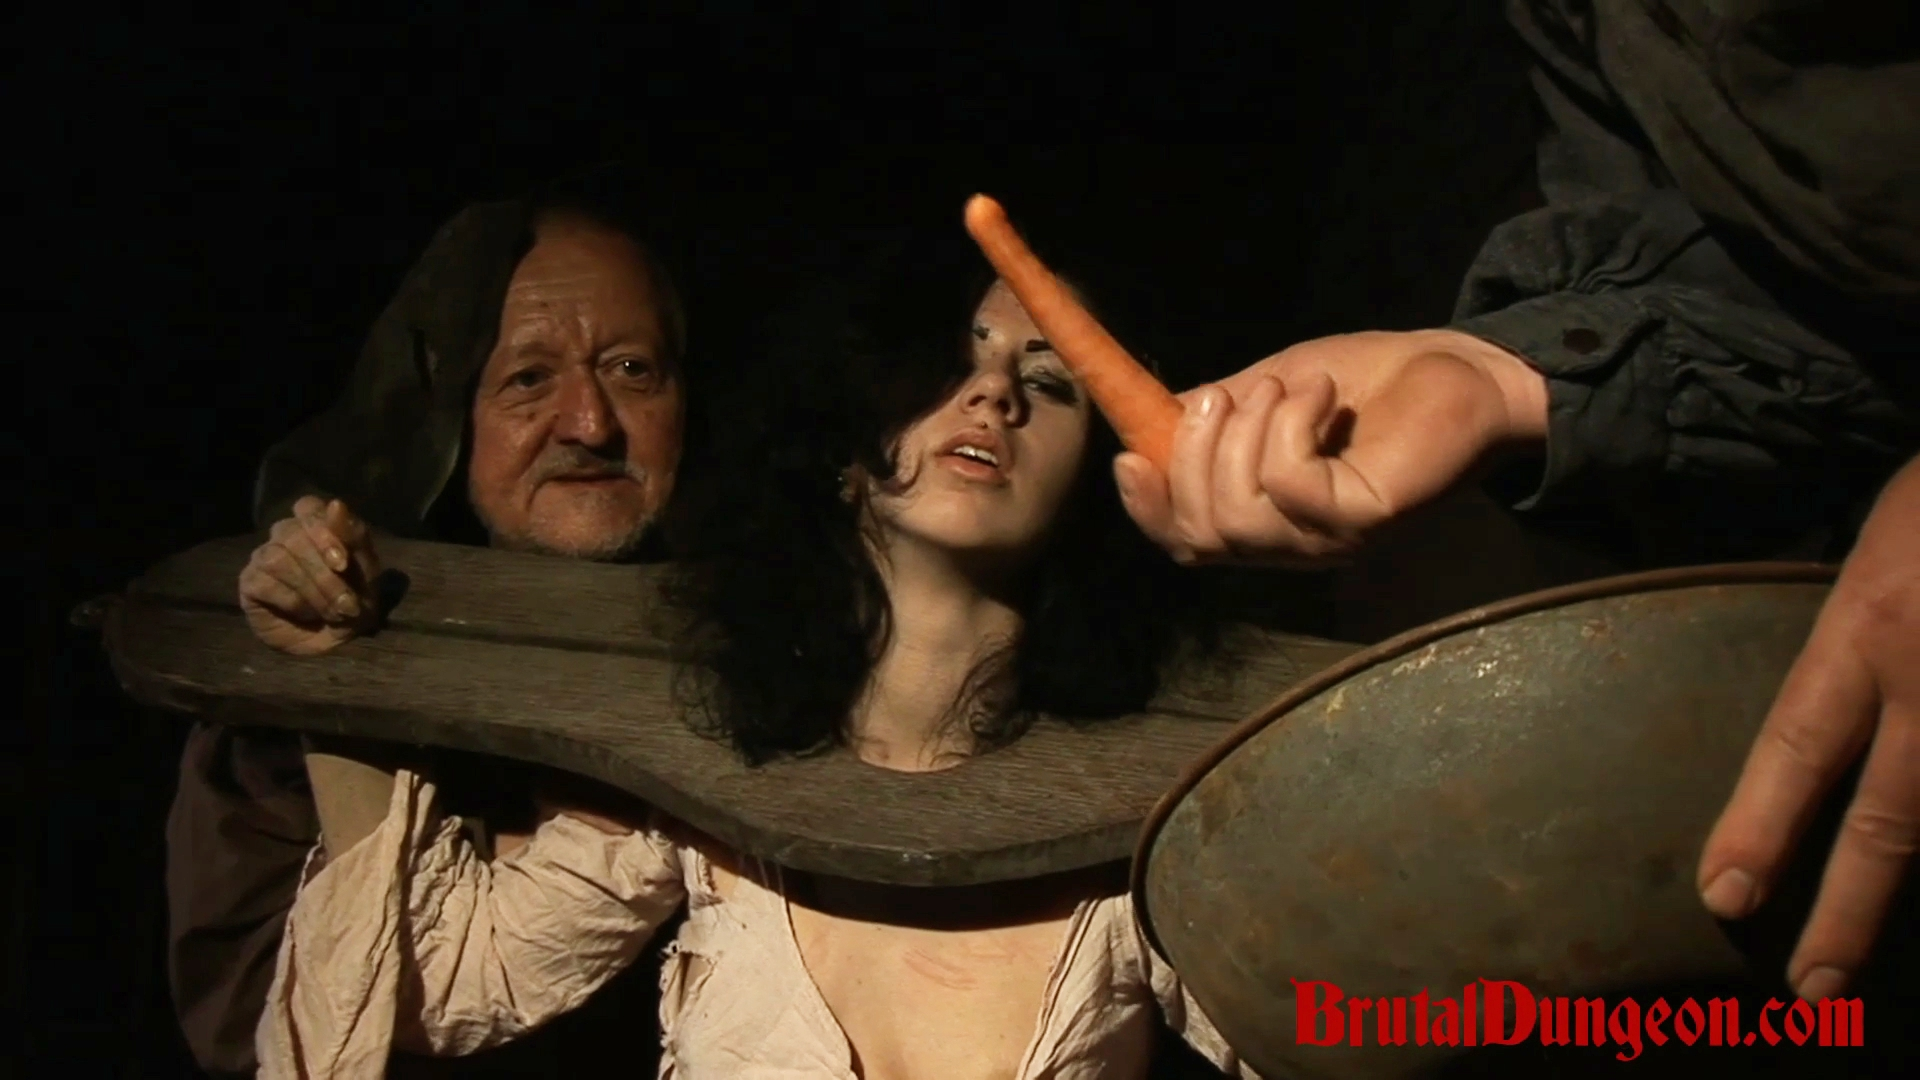 Brunette loredana imprisoned for bdsm gang bang  brunette wench loredana has been arrested and castigate in our dungeon  she s left without food and begs for a carrot  she will do anything to earn it even endure imprisonment an extreme bondage device domi. Brunette wench Loredana has been arrested and punish in our dungeon. She's left without food and begs for a carrot. She will do anything to earn it, even endure imprisonment, an extreme bondage device, domination, BDSM fun, gang bang, food play, vegetable penetration, spanking, slapping, fingering, tit, nipple and cunt torment.